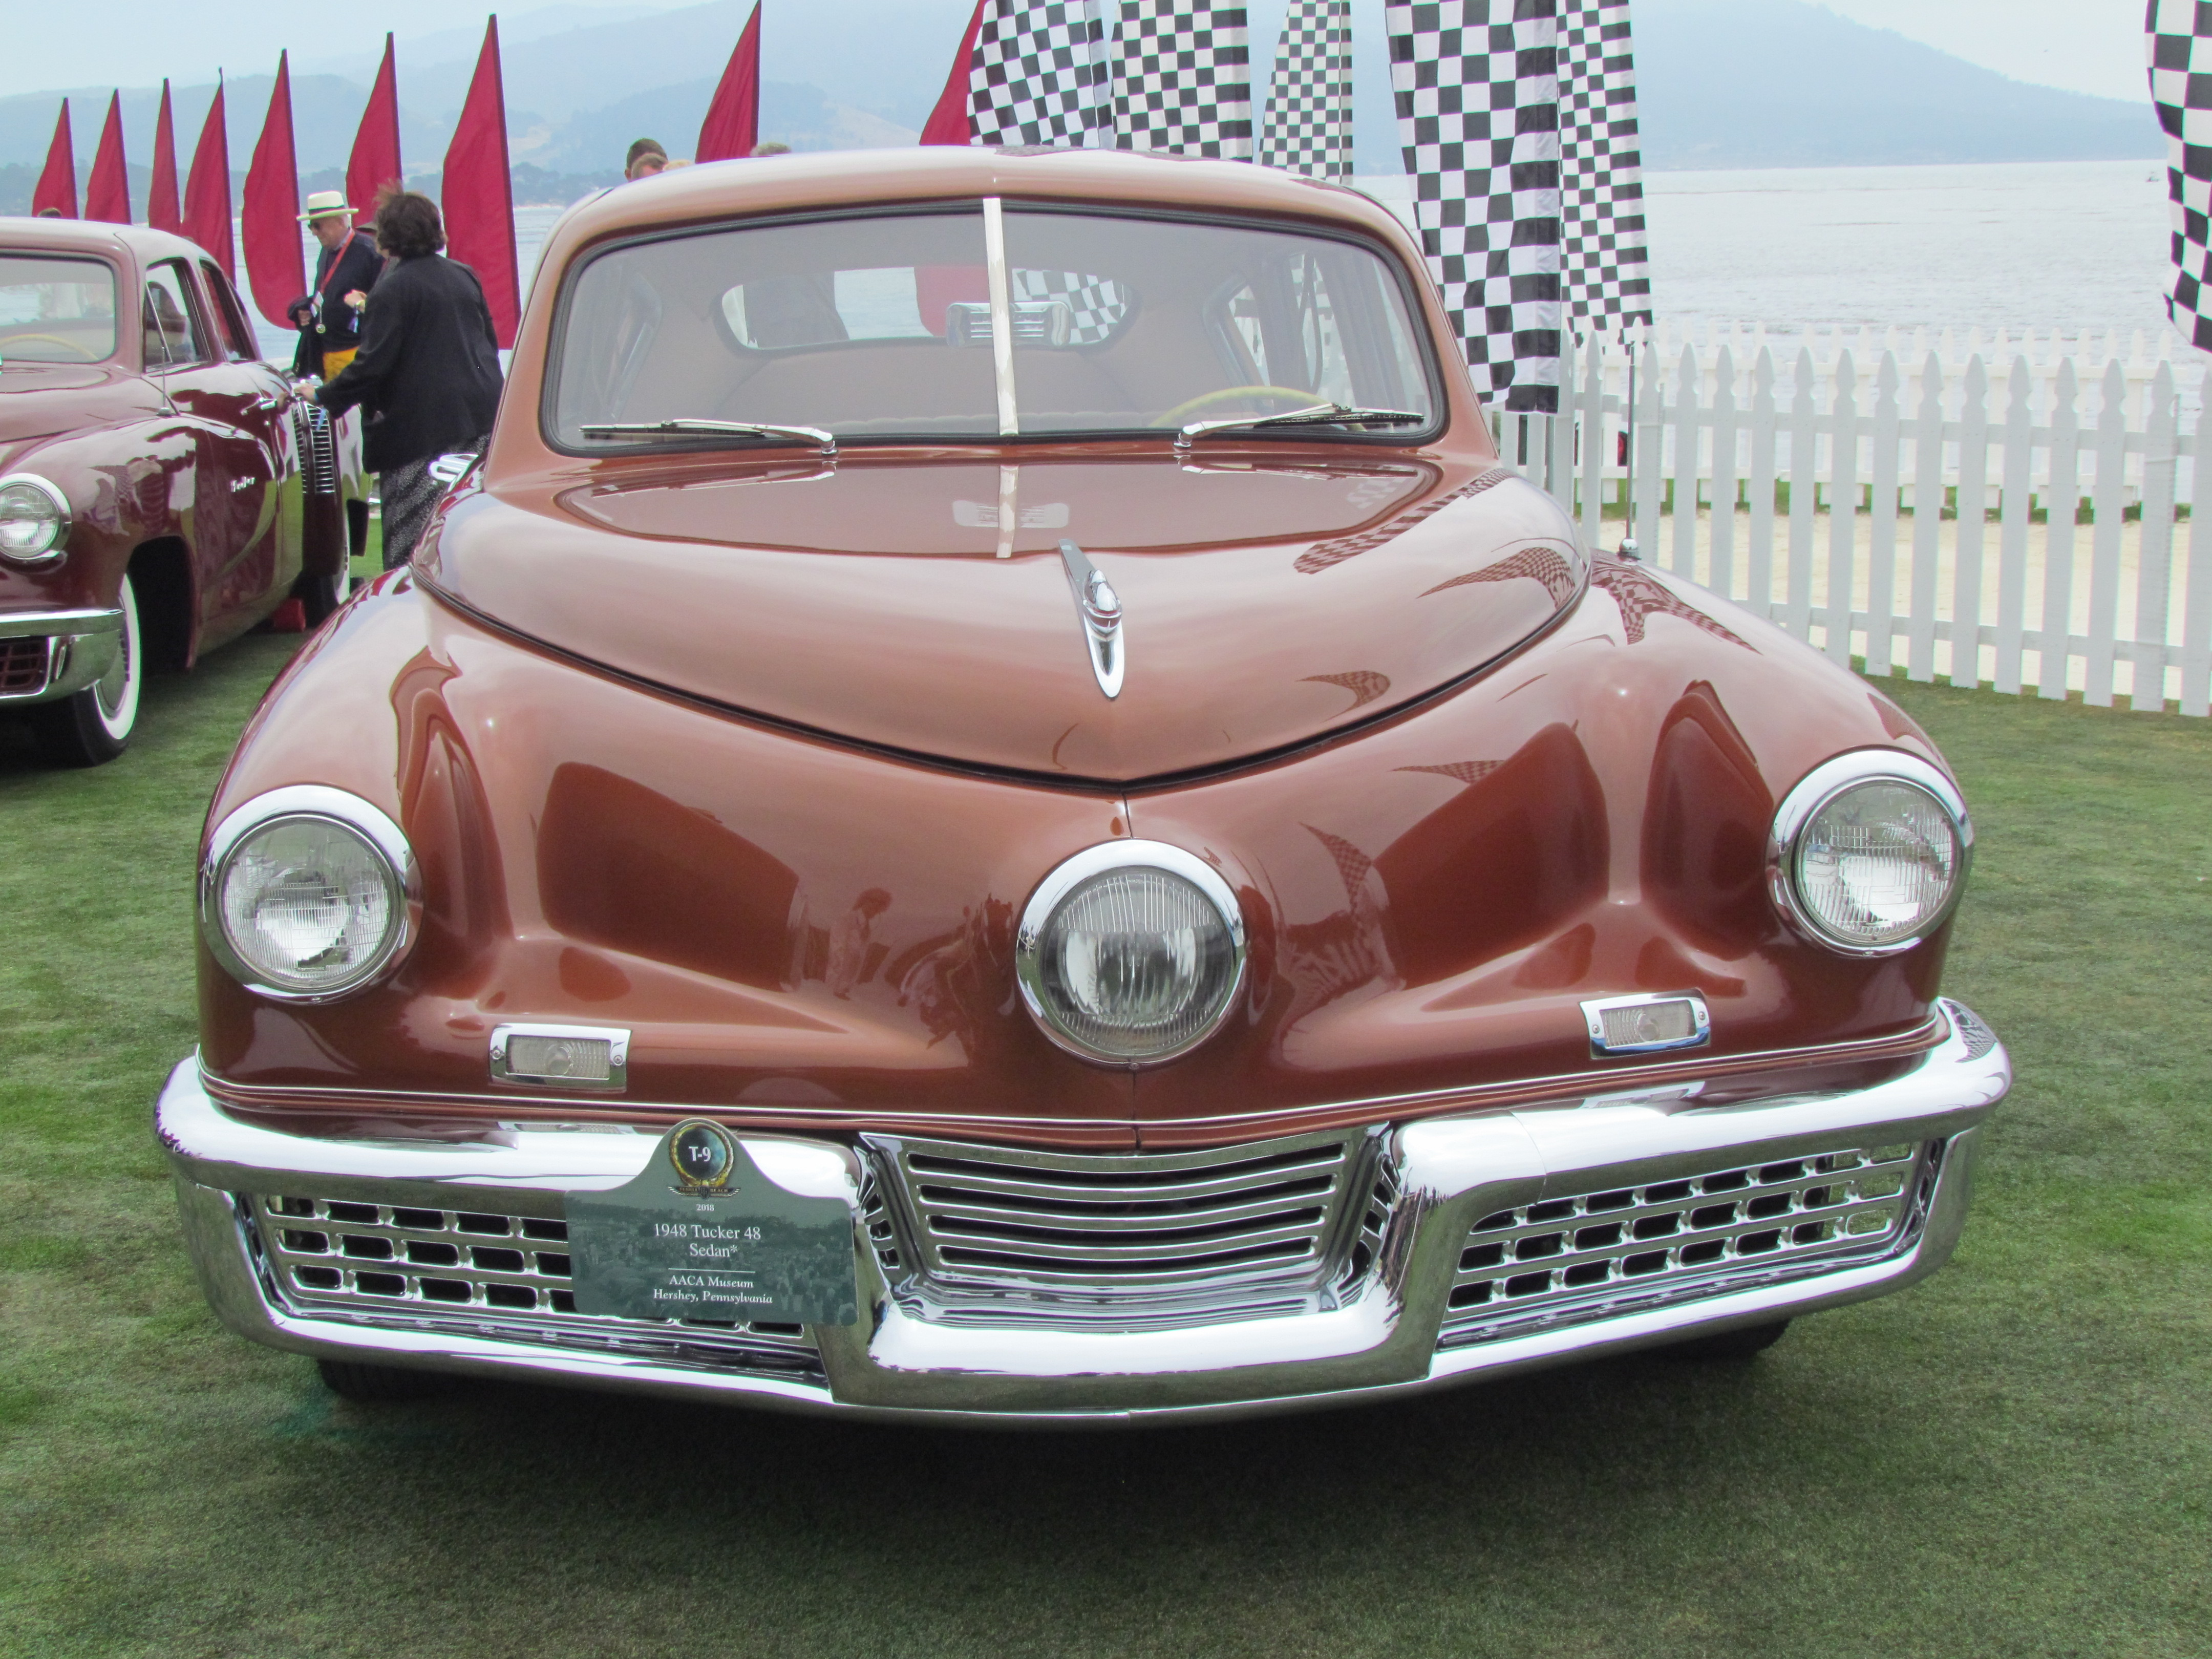 Tuckers, A trove of Tuckers at Pebble Beach, ClassicCars.com Journal